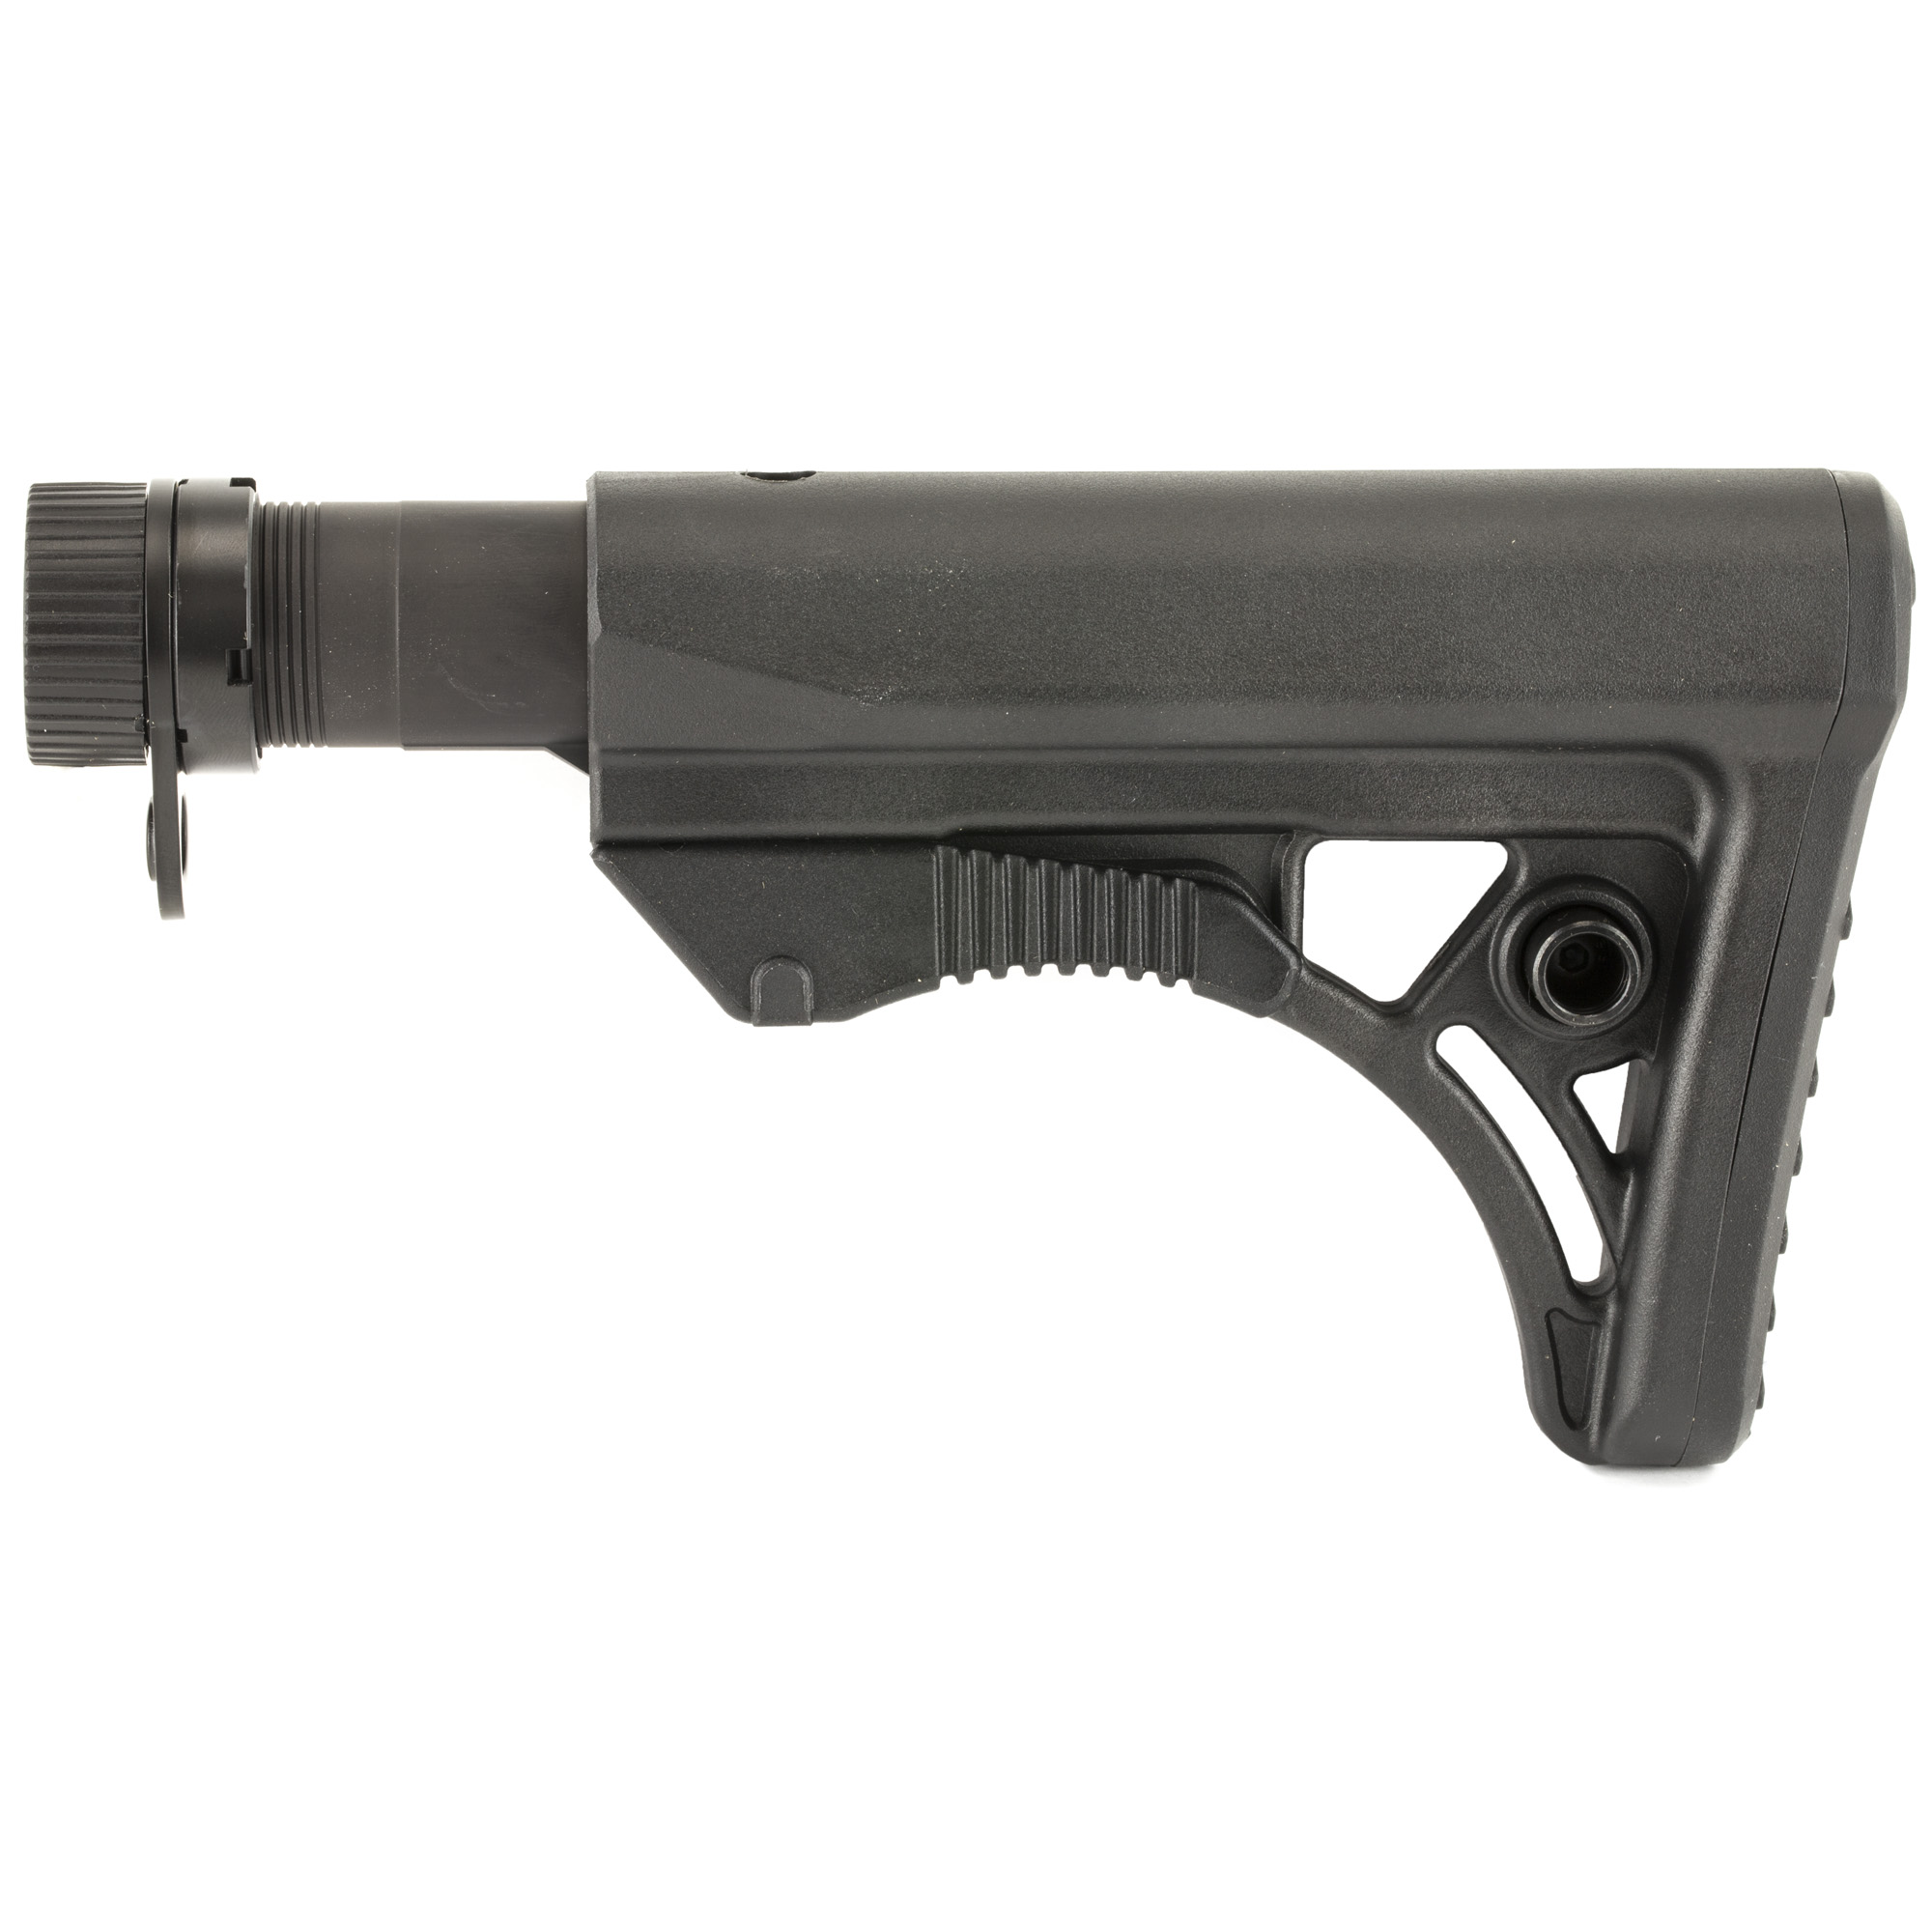 """The Leapers UTG AR-15 PRO Model 4 Ops Ready S3 Stock is molded from high impact reinforced polymer materials. It features an ergonomically chamfered rubberized butt pad and a slanted cheek rest that enhances shooting stability and consistent firearm control. The stock has an integral ambidextrous sling loop and ambidextrous QD sling swivel housing for left or right handed shooters. The stock has fully dehorned corners and melted contours for snag-free use. This kit includes a polymer stock"""" mil-spec 6-position extension tube"""" buffer"""" buffer spring"""" tear-drop ring and castle nut."""